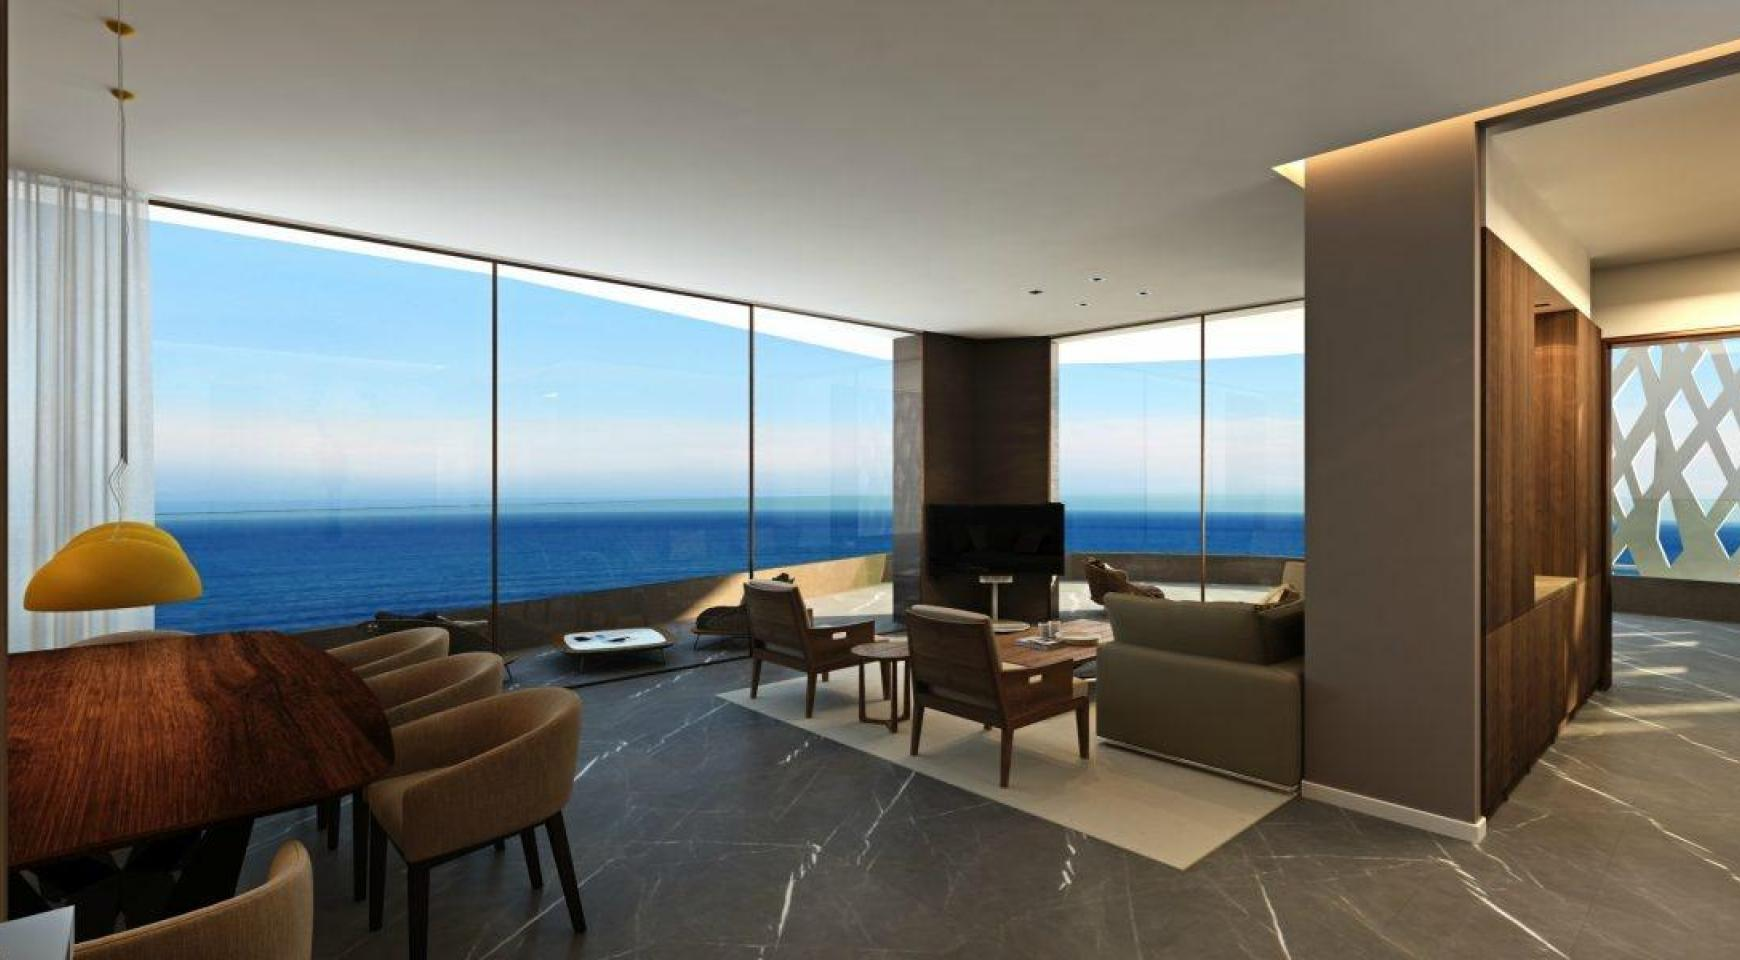 4 Bedroom Penthouse in a New Unique Project by the Sea - 17